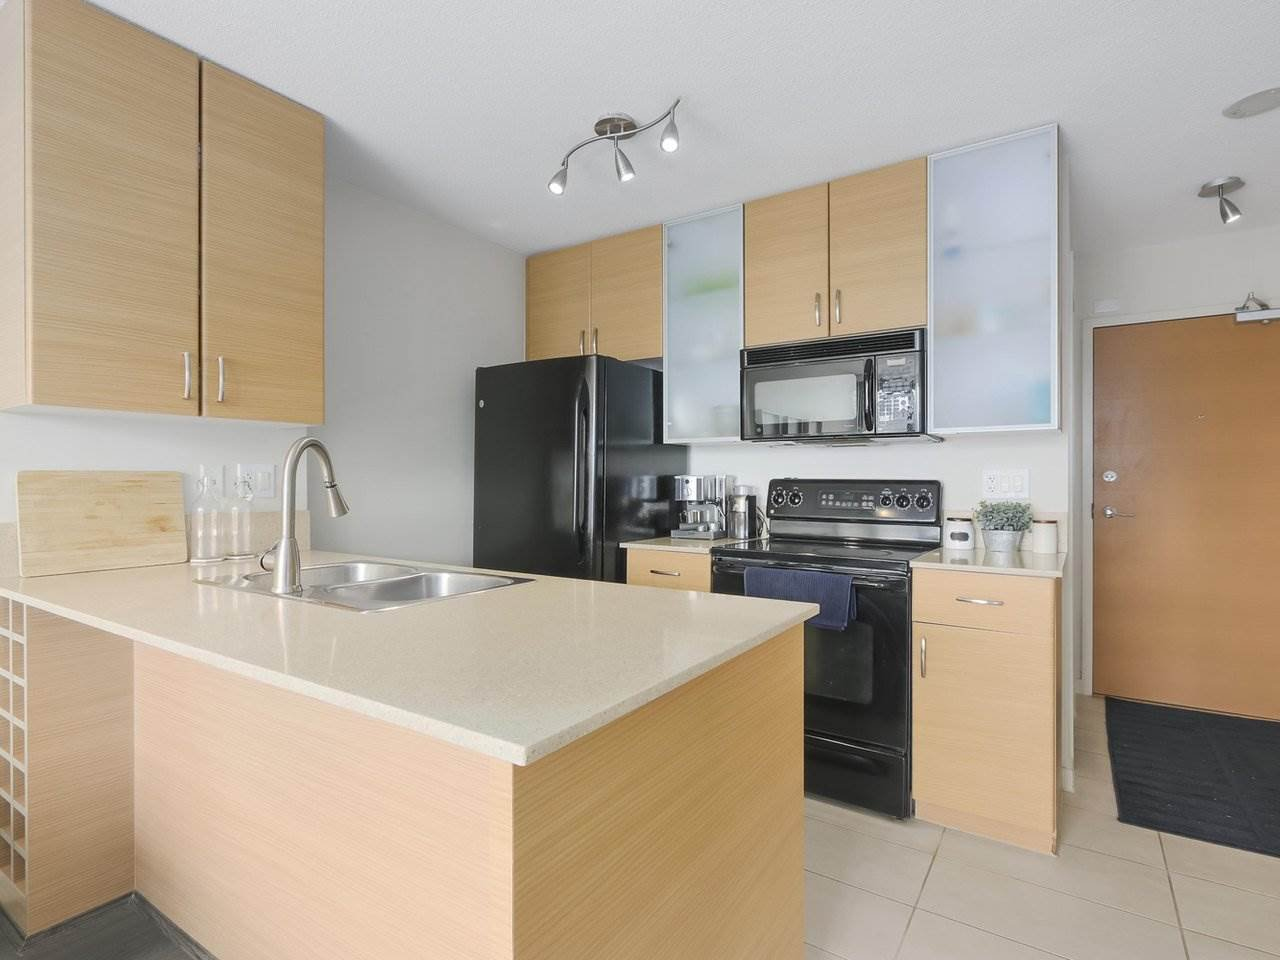 """Main Photo: 2306 977 MAINLAND Street in Vancouver: Yaletown Condo for sale in """"YALETOWN PARK 3"""" (Vancouver West)  : MLS®# R2367819"""